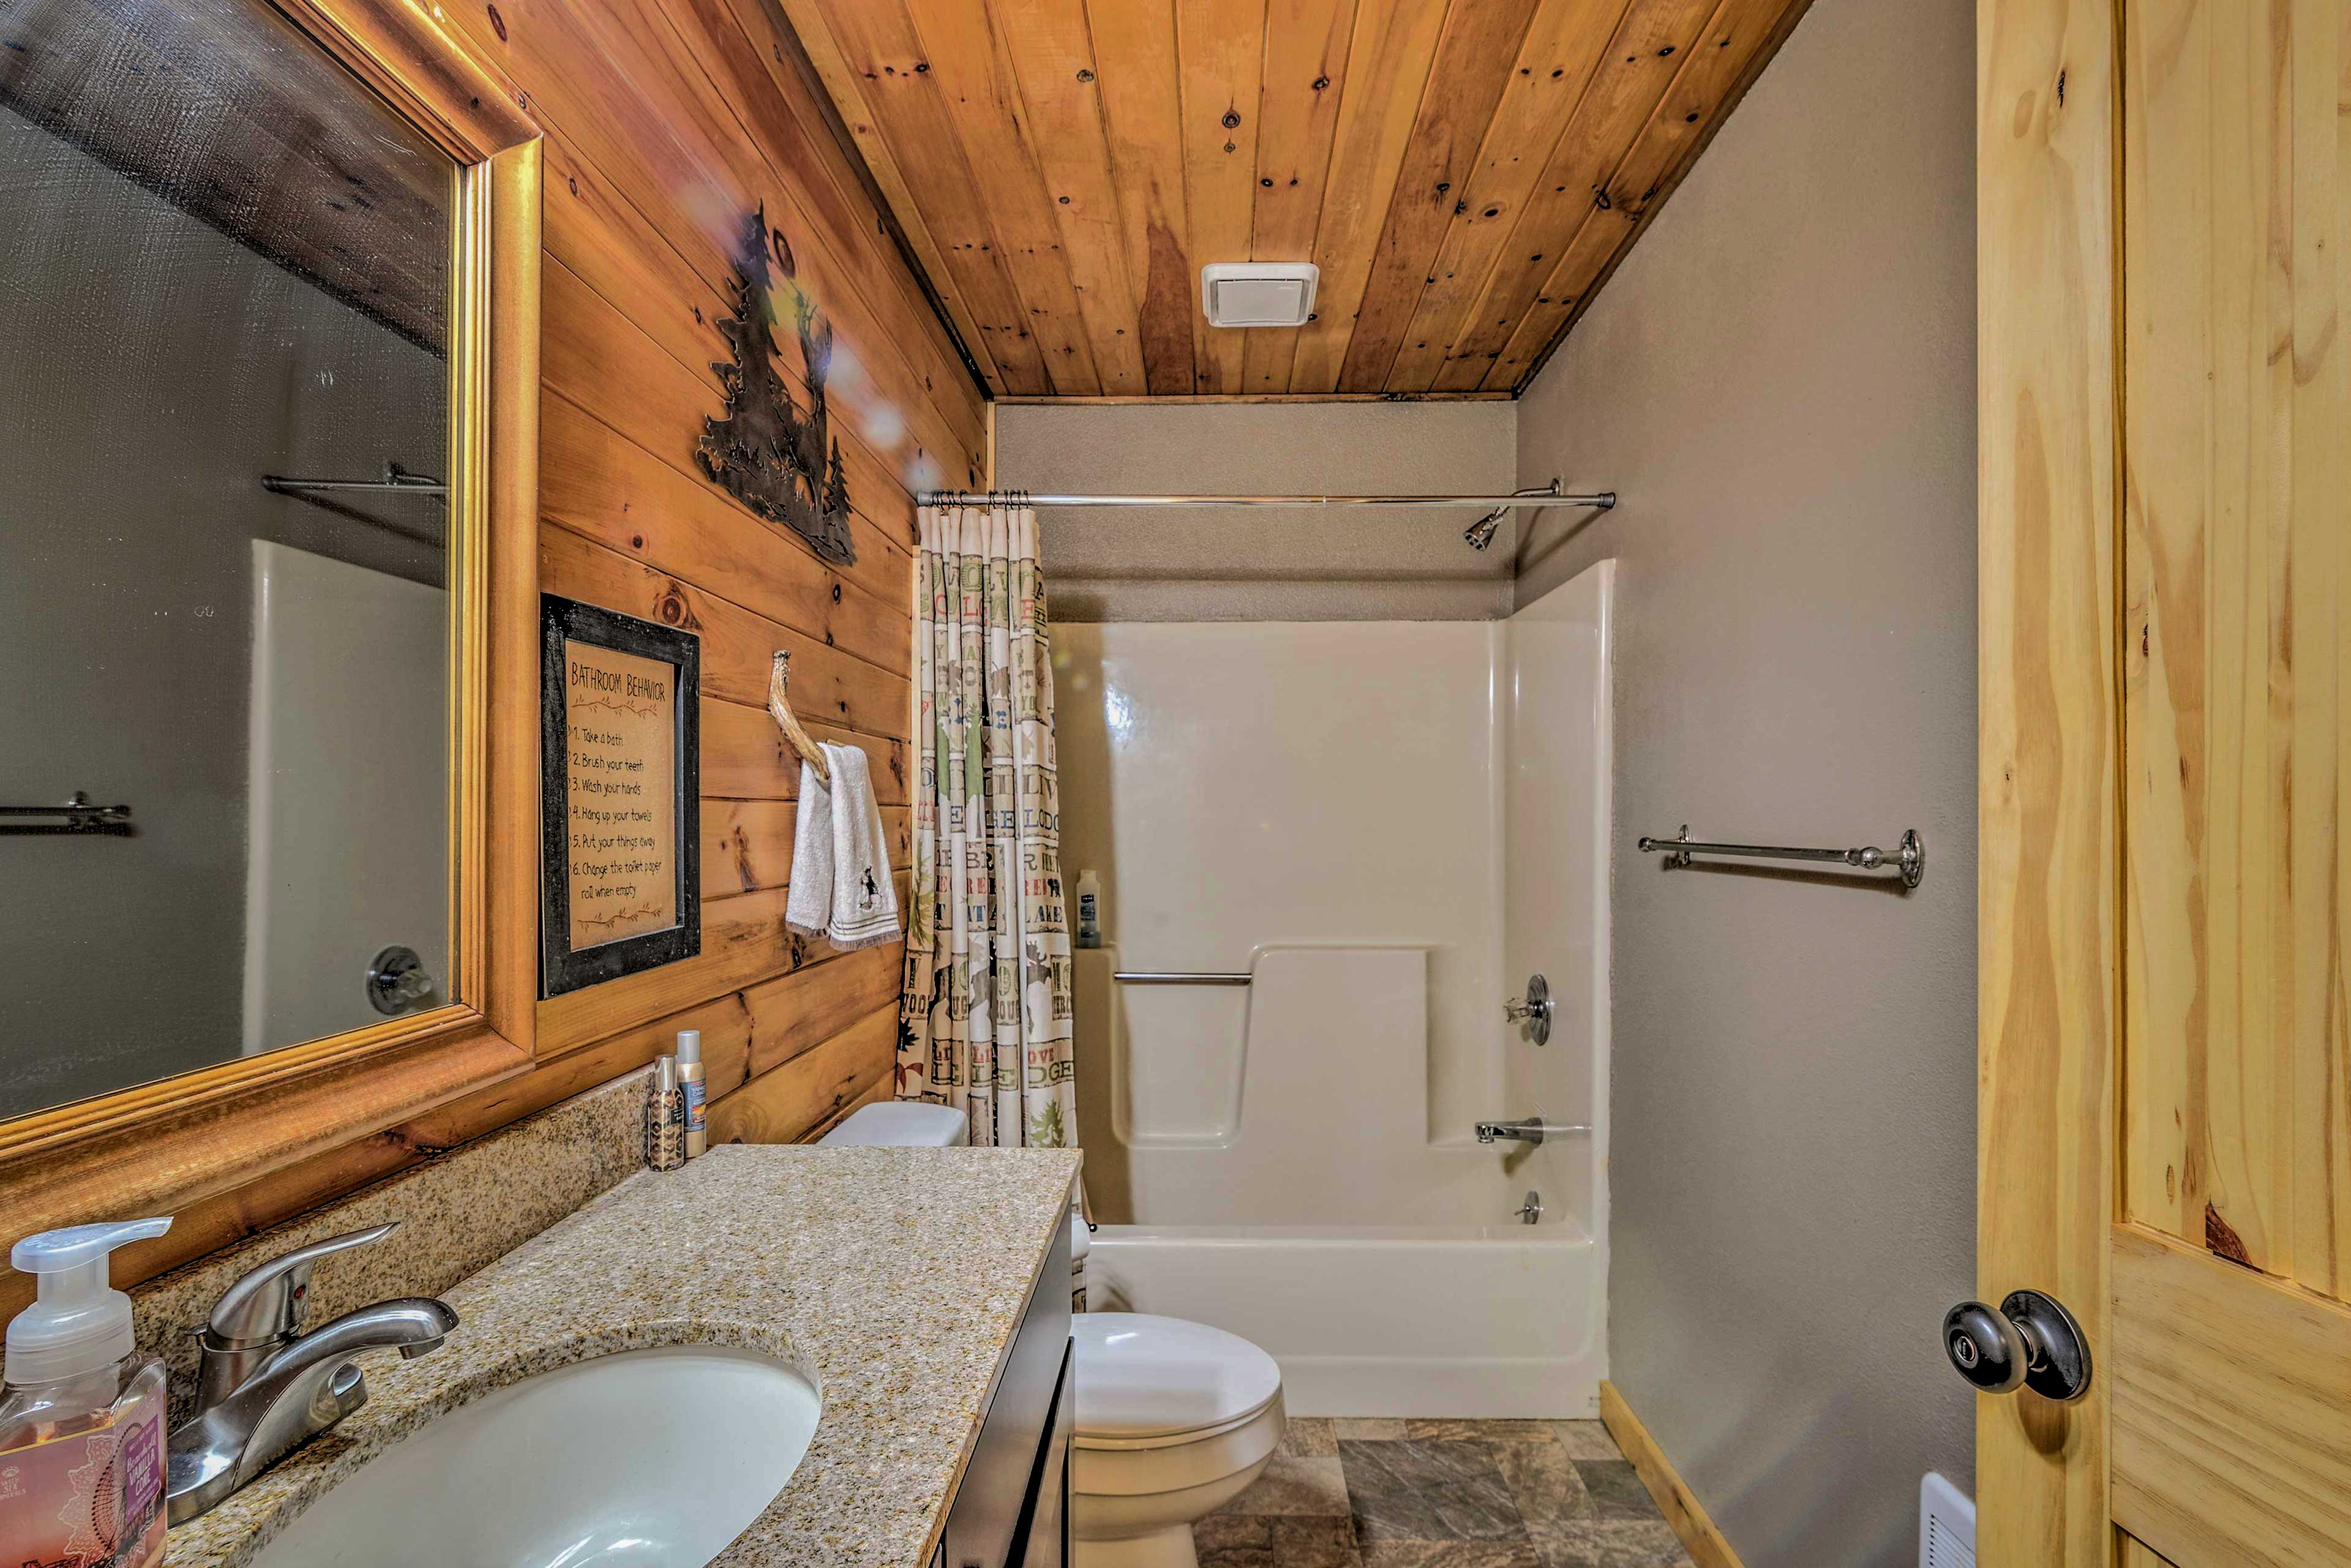 After a day on the trails, rinse off in the shower/tub combo.